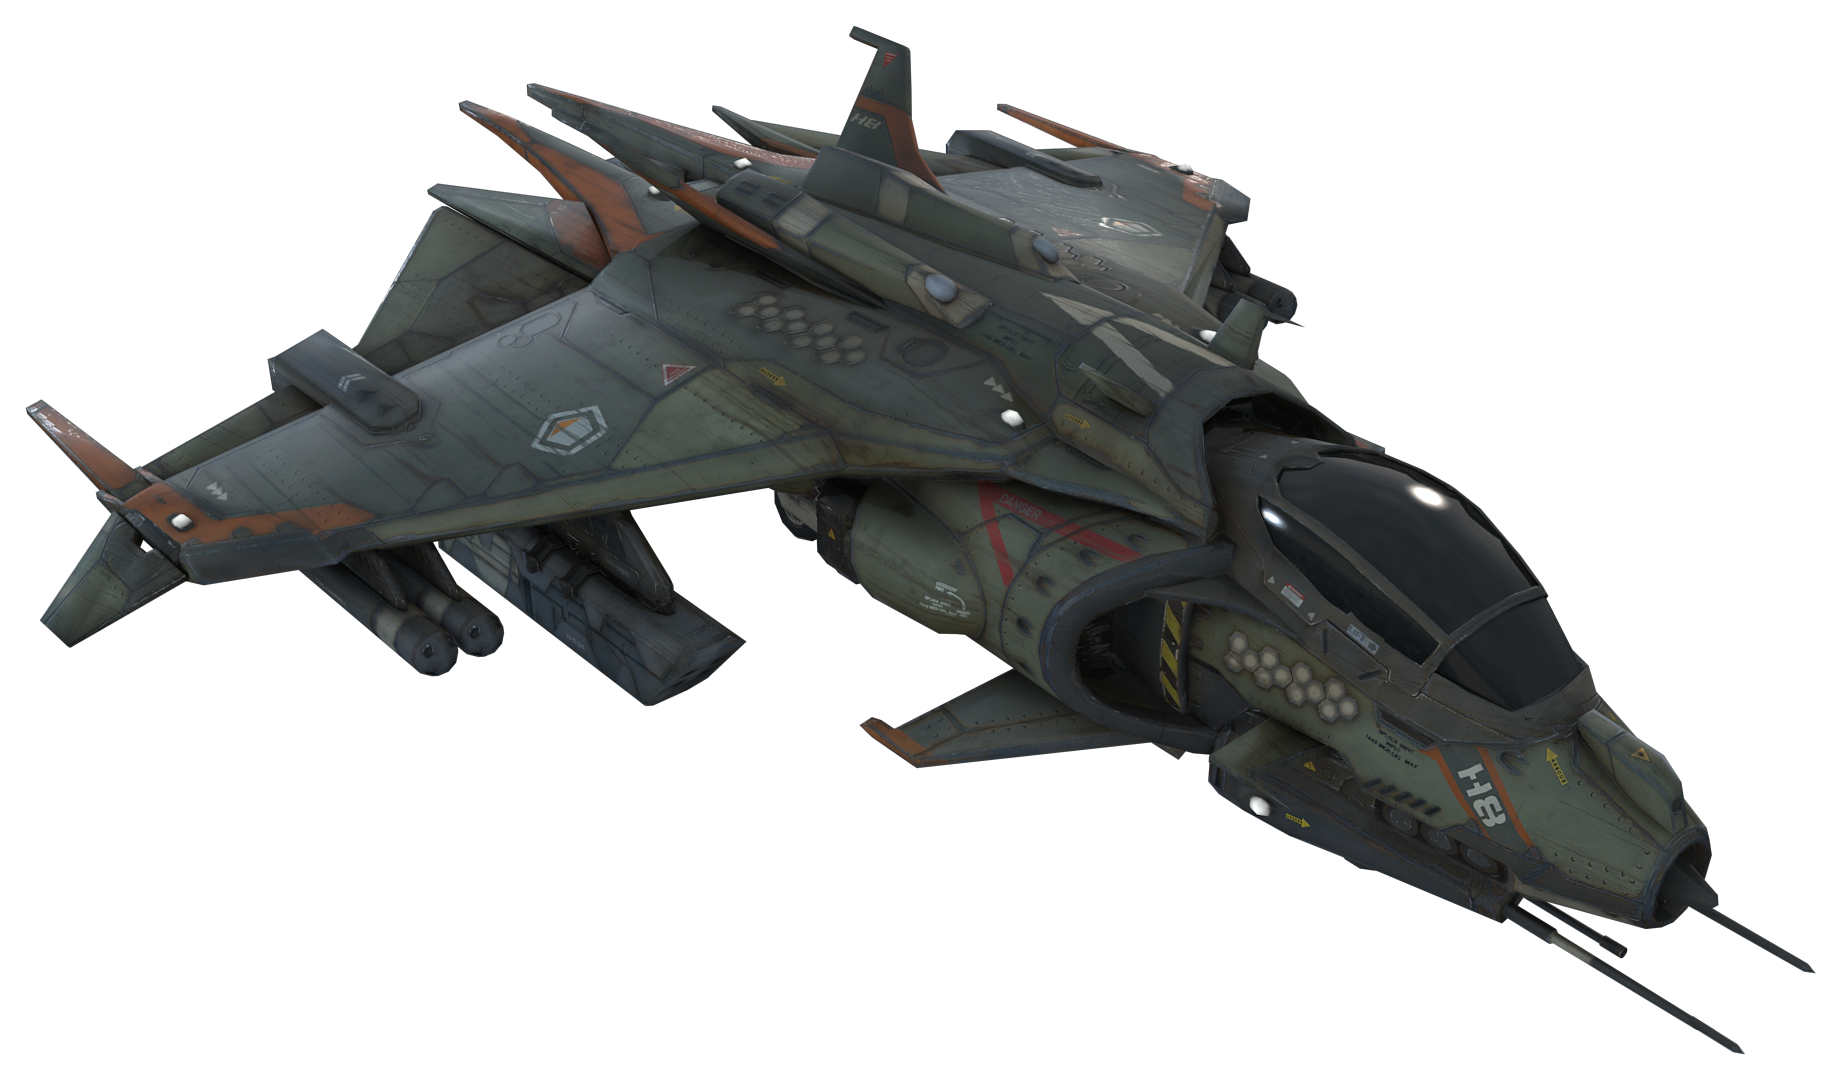 eve online drone ships with 488077678341855080 on Eve Online Rubicon Features New Ships Deployable Structures And More as well New Drone Modules And Skill Updates in addition Vanguard Variants By Gurmukh Bhasin likewise Reworking Capital Ships And Thus It Begins further 5 Spaceships  ing Soontm To A Sci Fi Universe Near You.